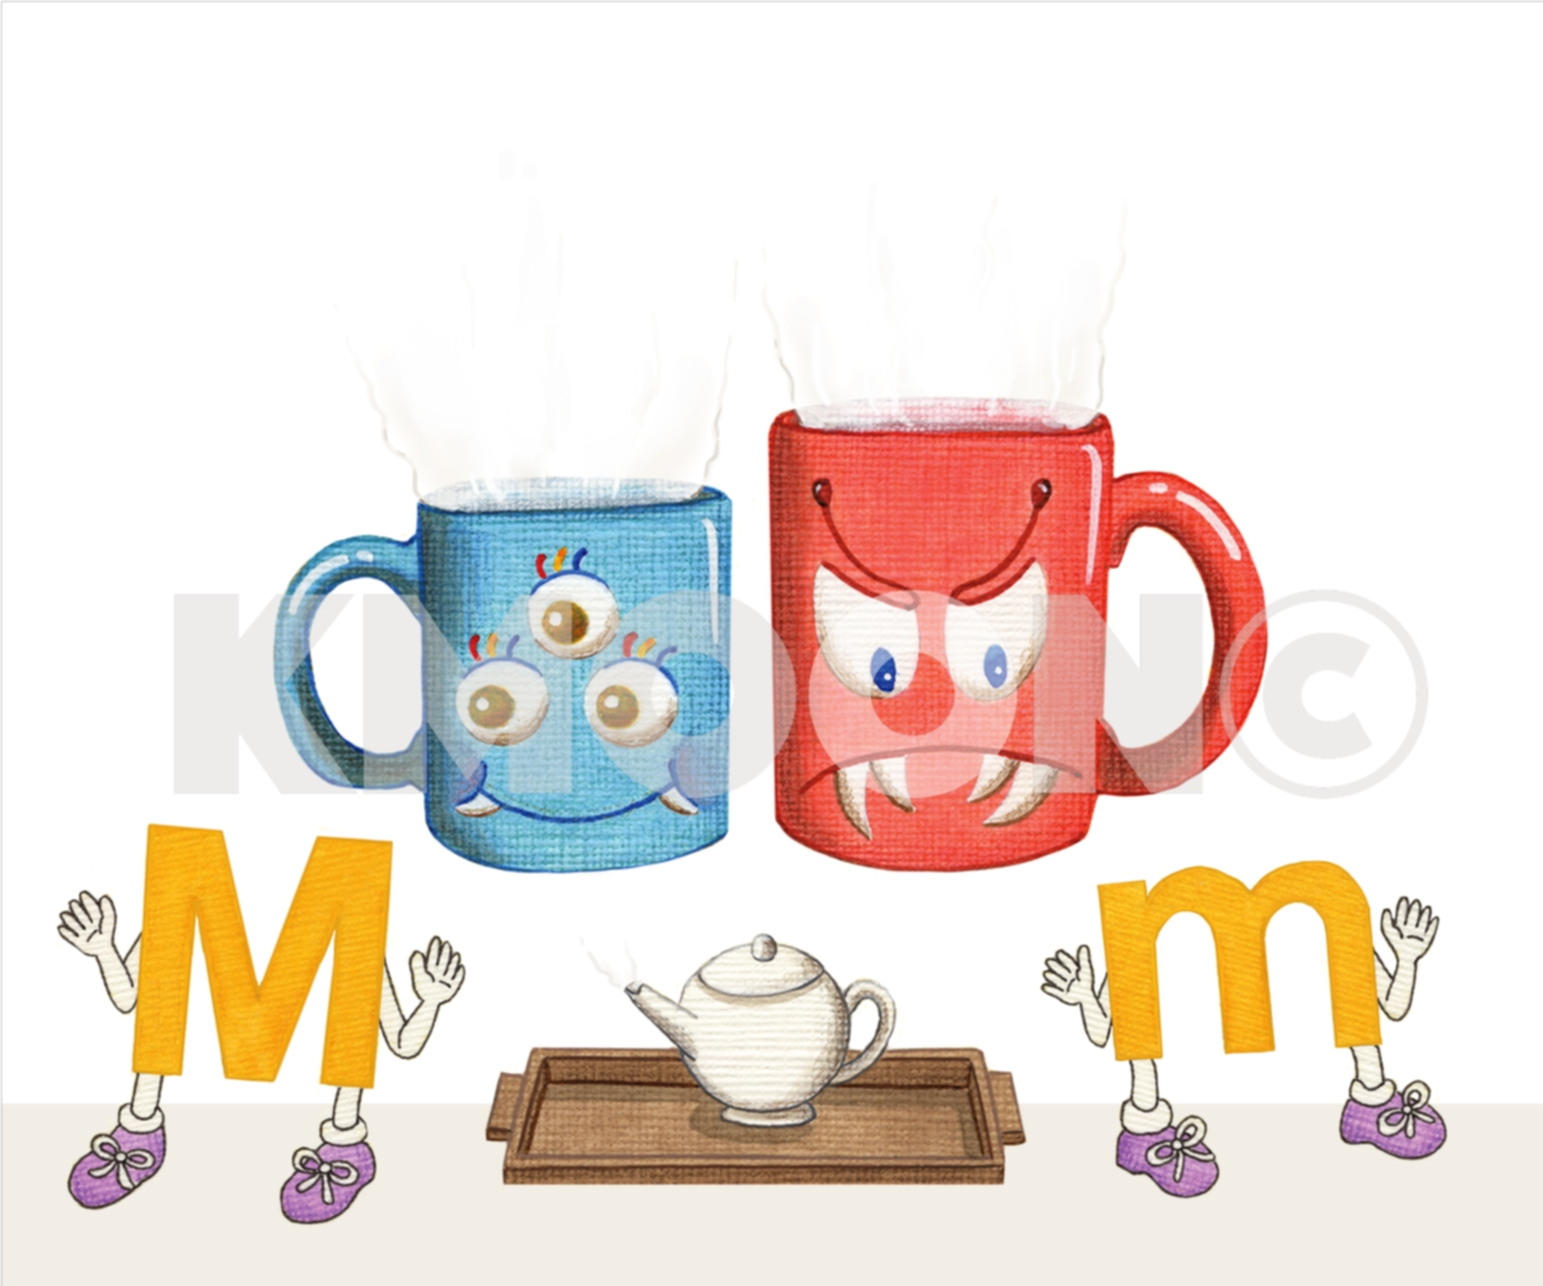 Mm is for ... mug